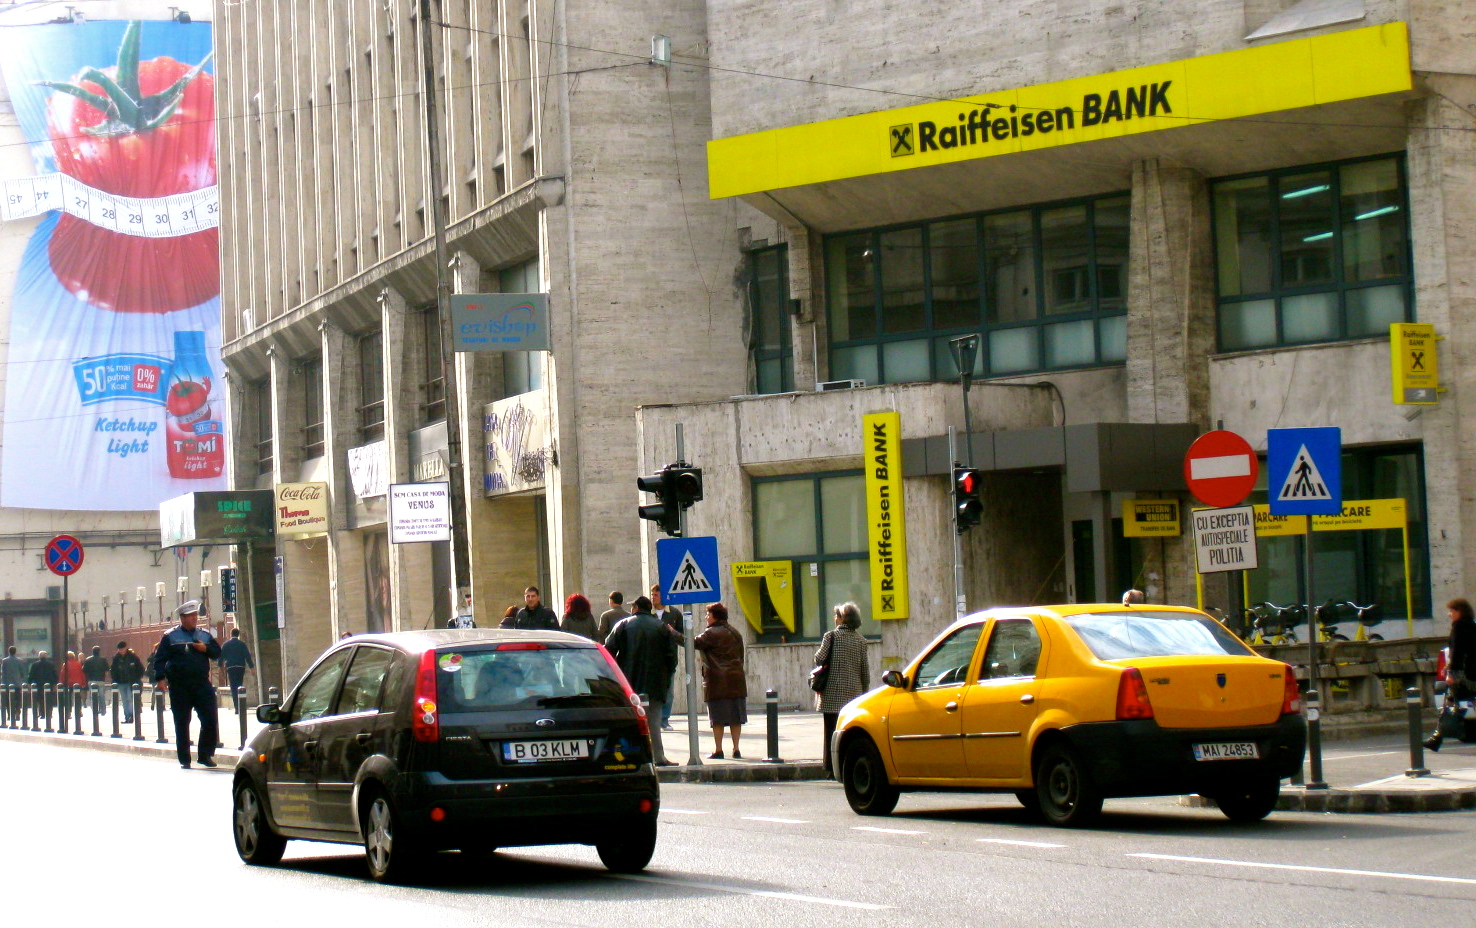 Romanians, distrustful of banks, poll shows